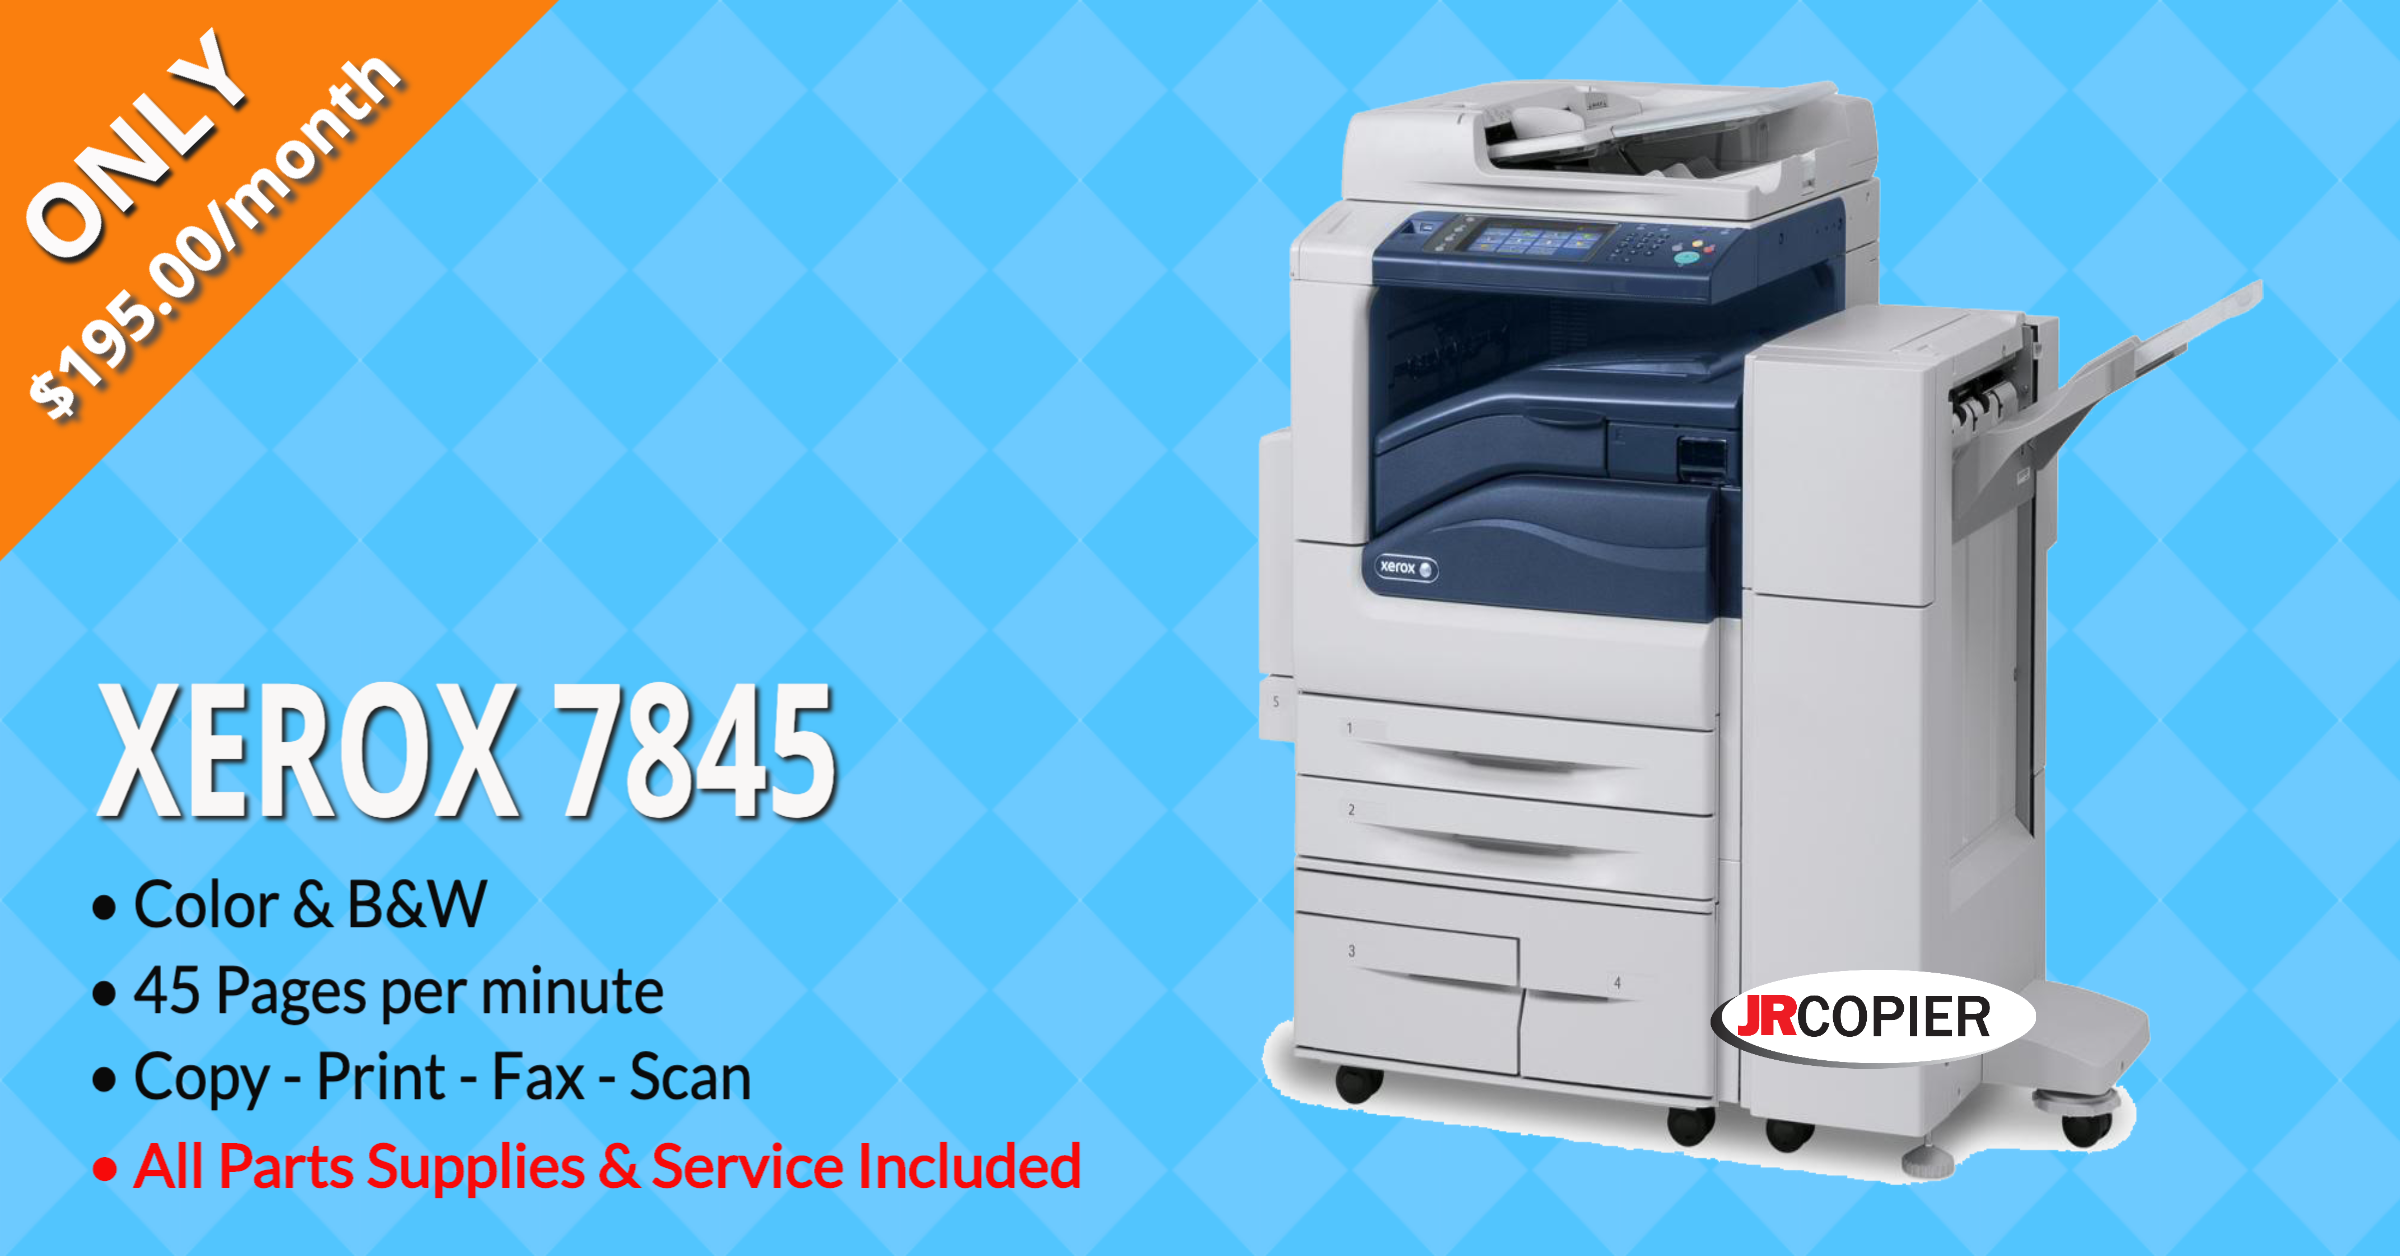 Multifunction Printer Sales 46107, 46203, 46237, 46239, 46259